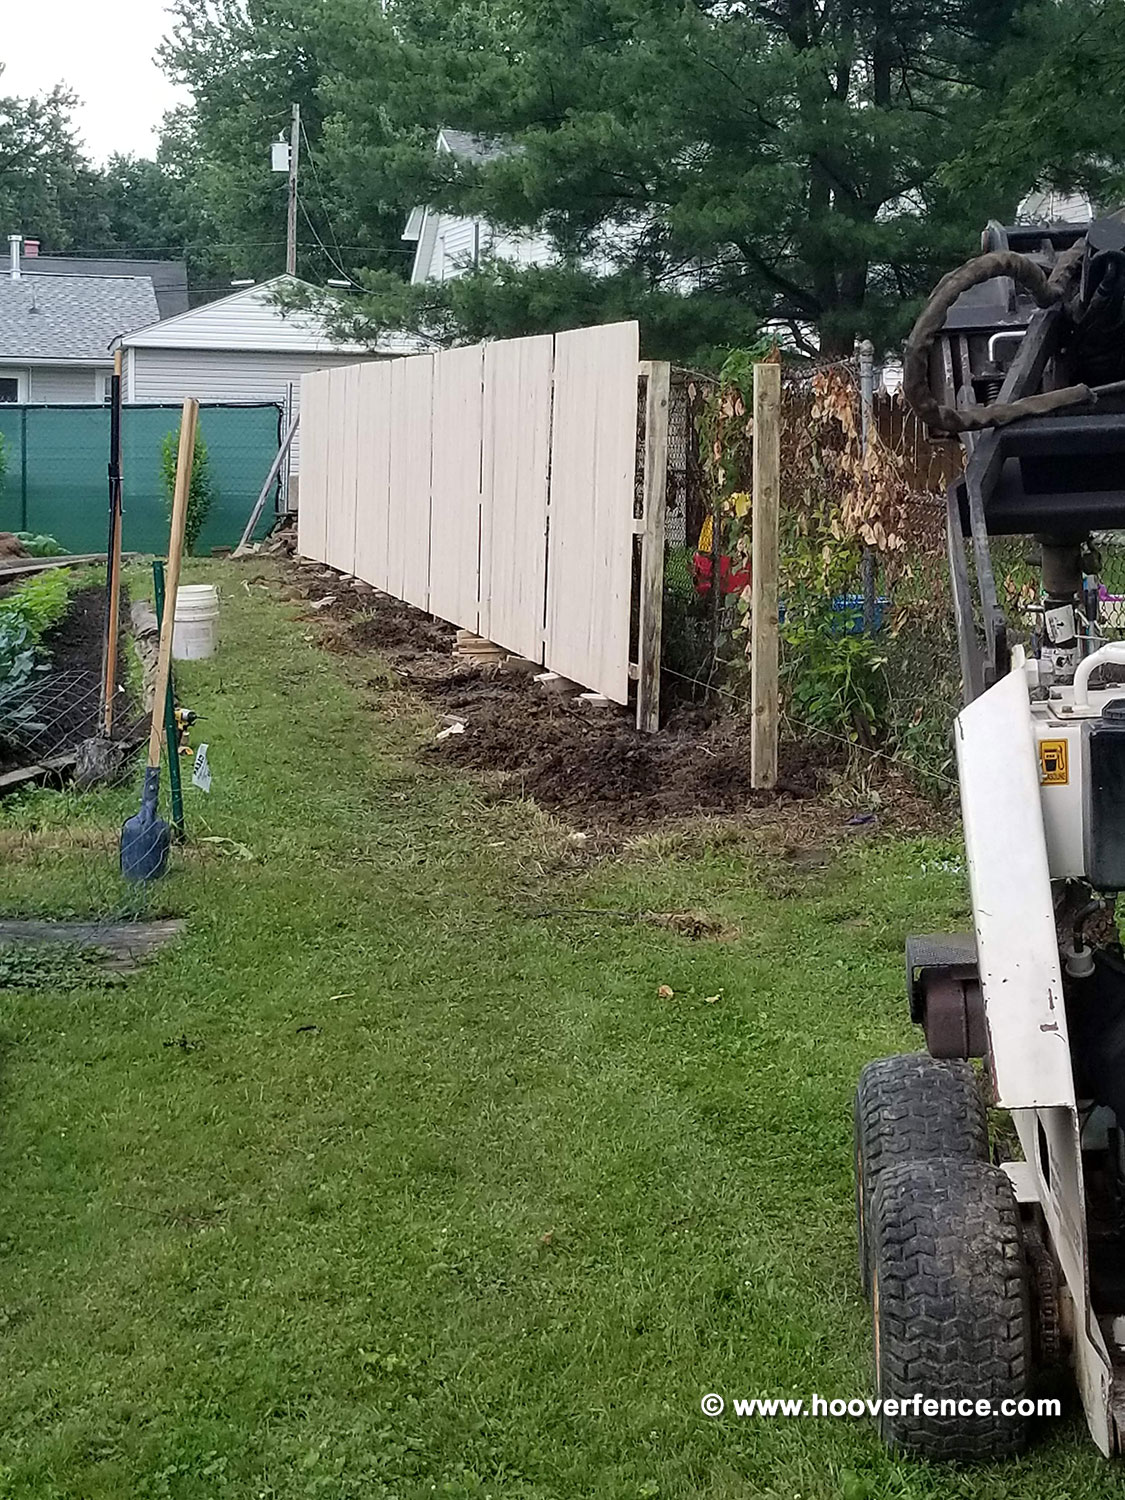 Hoover Fence Co Install - 6' High Spruce Stockade Privacy Fence Panels - Warren, Ohio - 2018